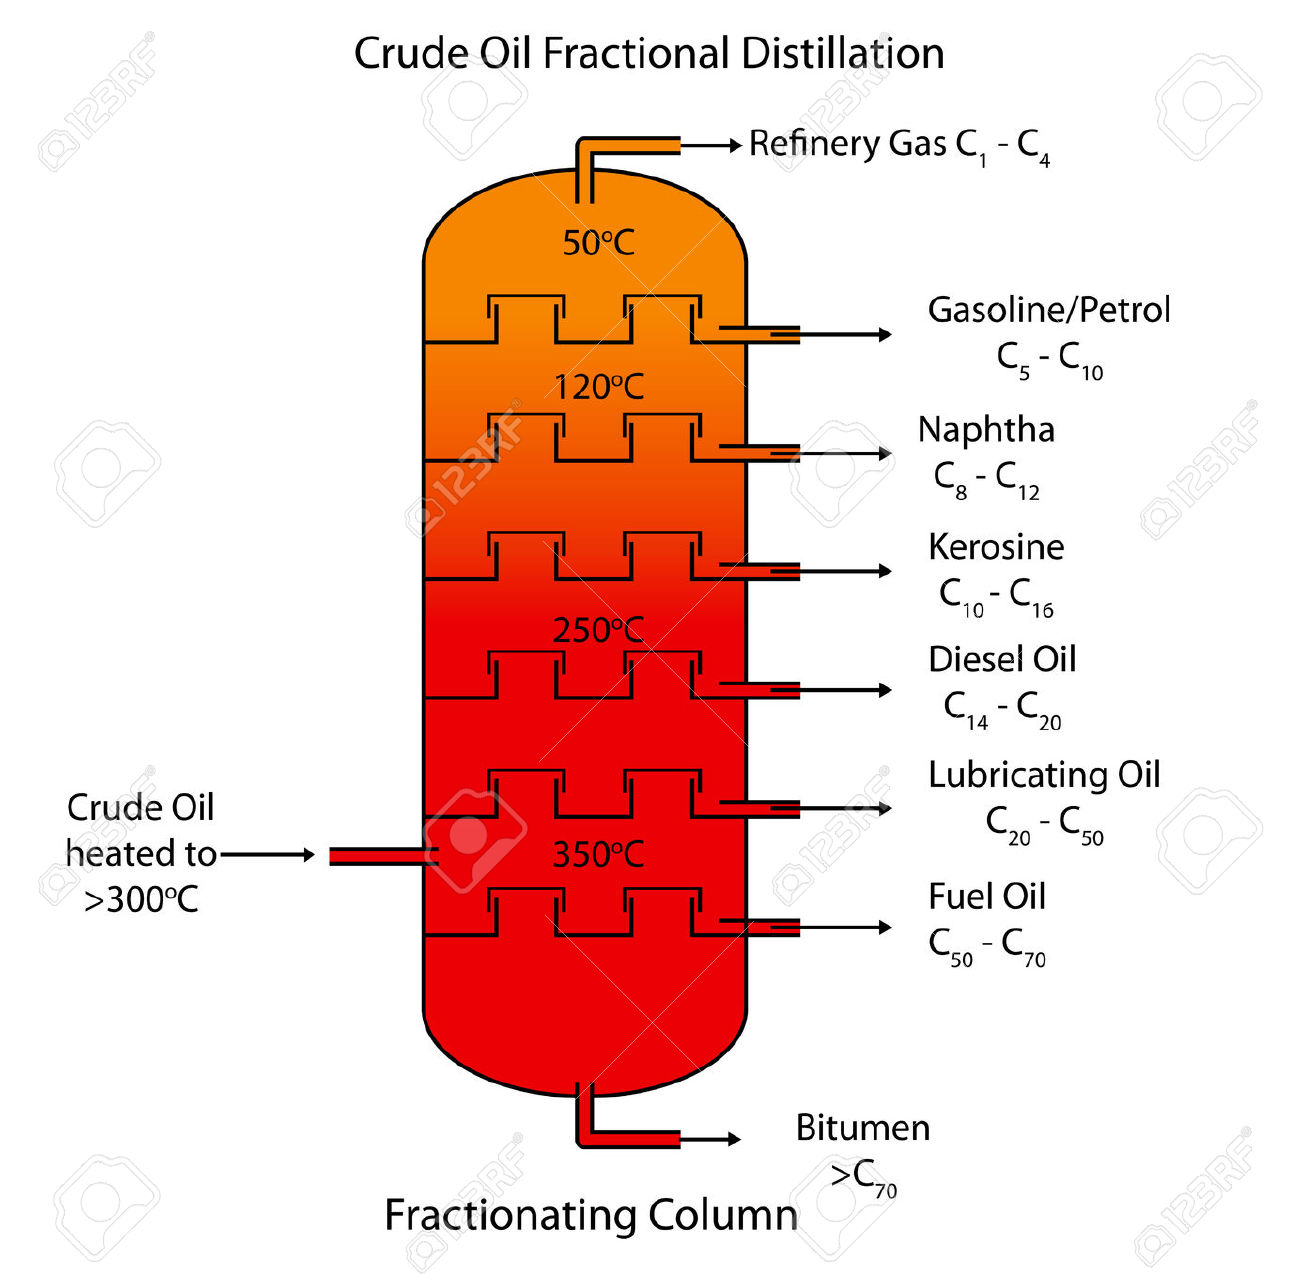 Labeled Diagram Of Crude Oil Fractional Distillation. Royalty Free.